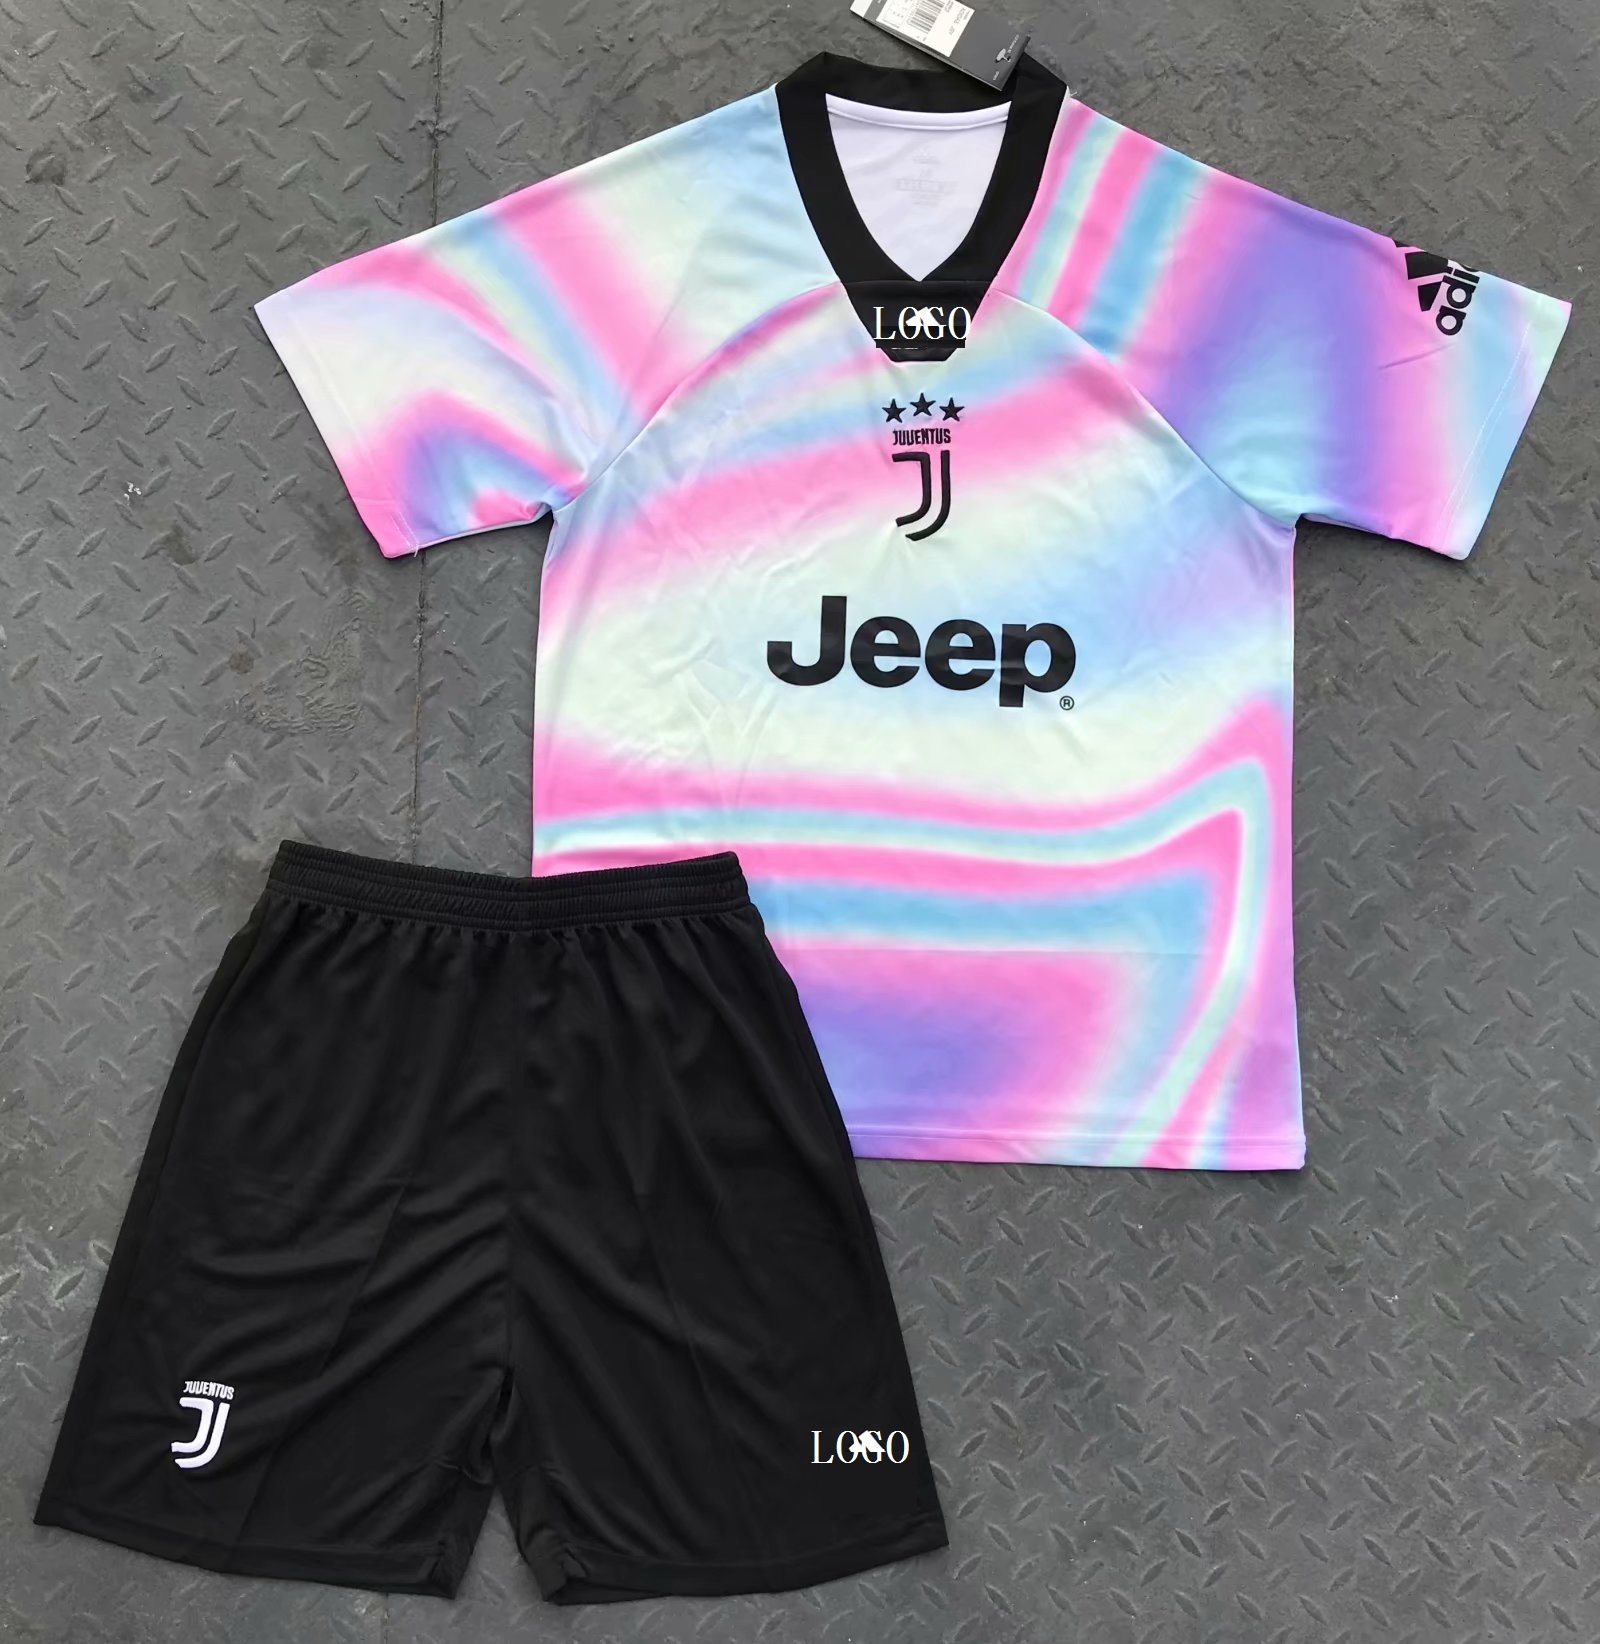 2019 20 Adult Juventus Ea Sports Red Soccer Uniforms Special Version